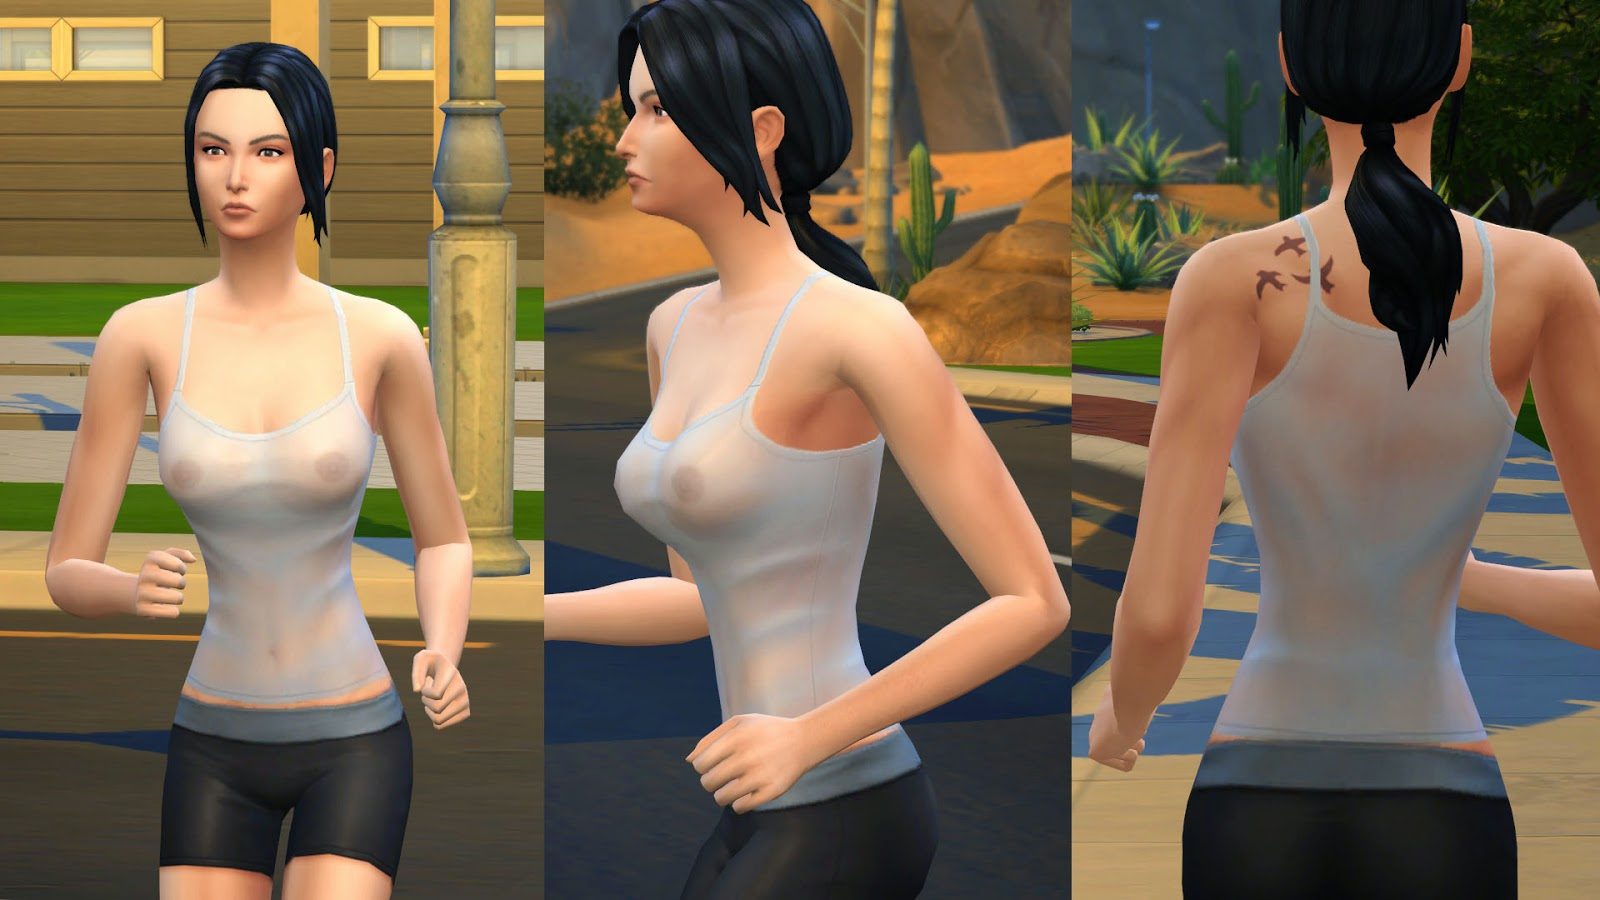 The sims deluxe edition nude mod adult photos